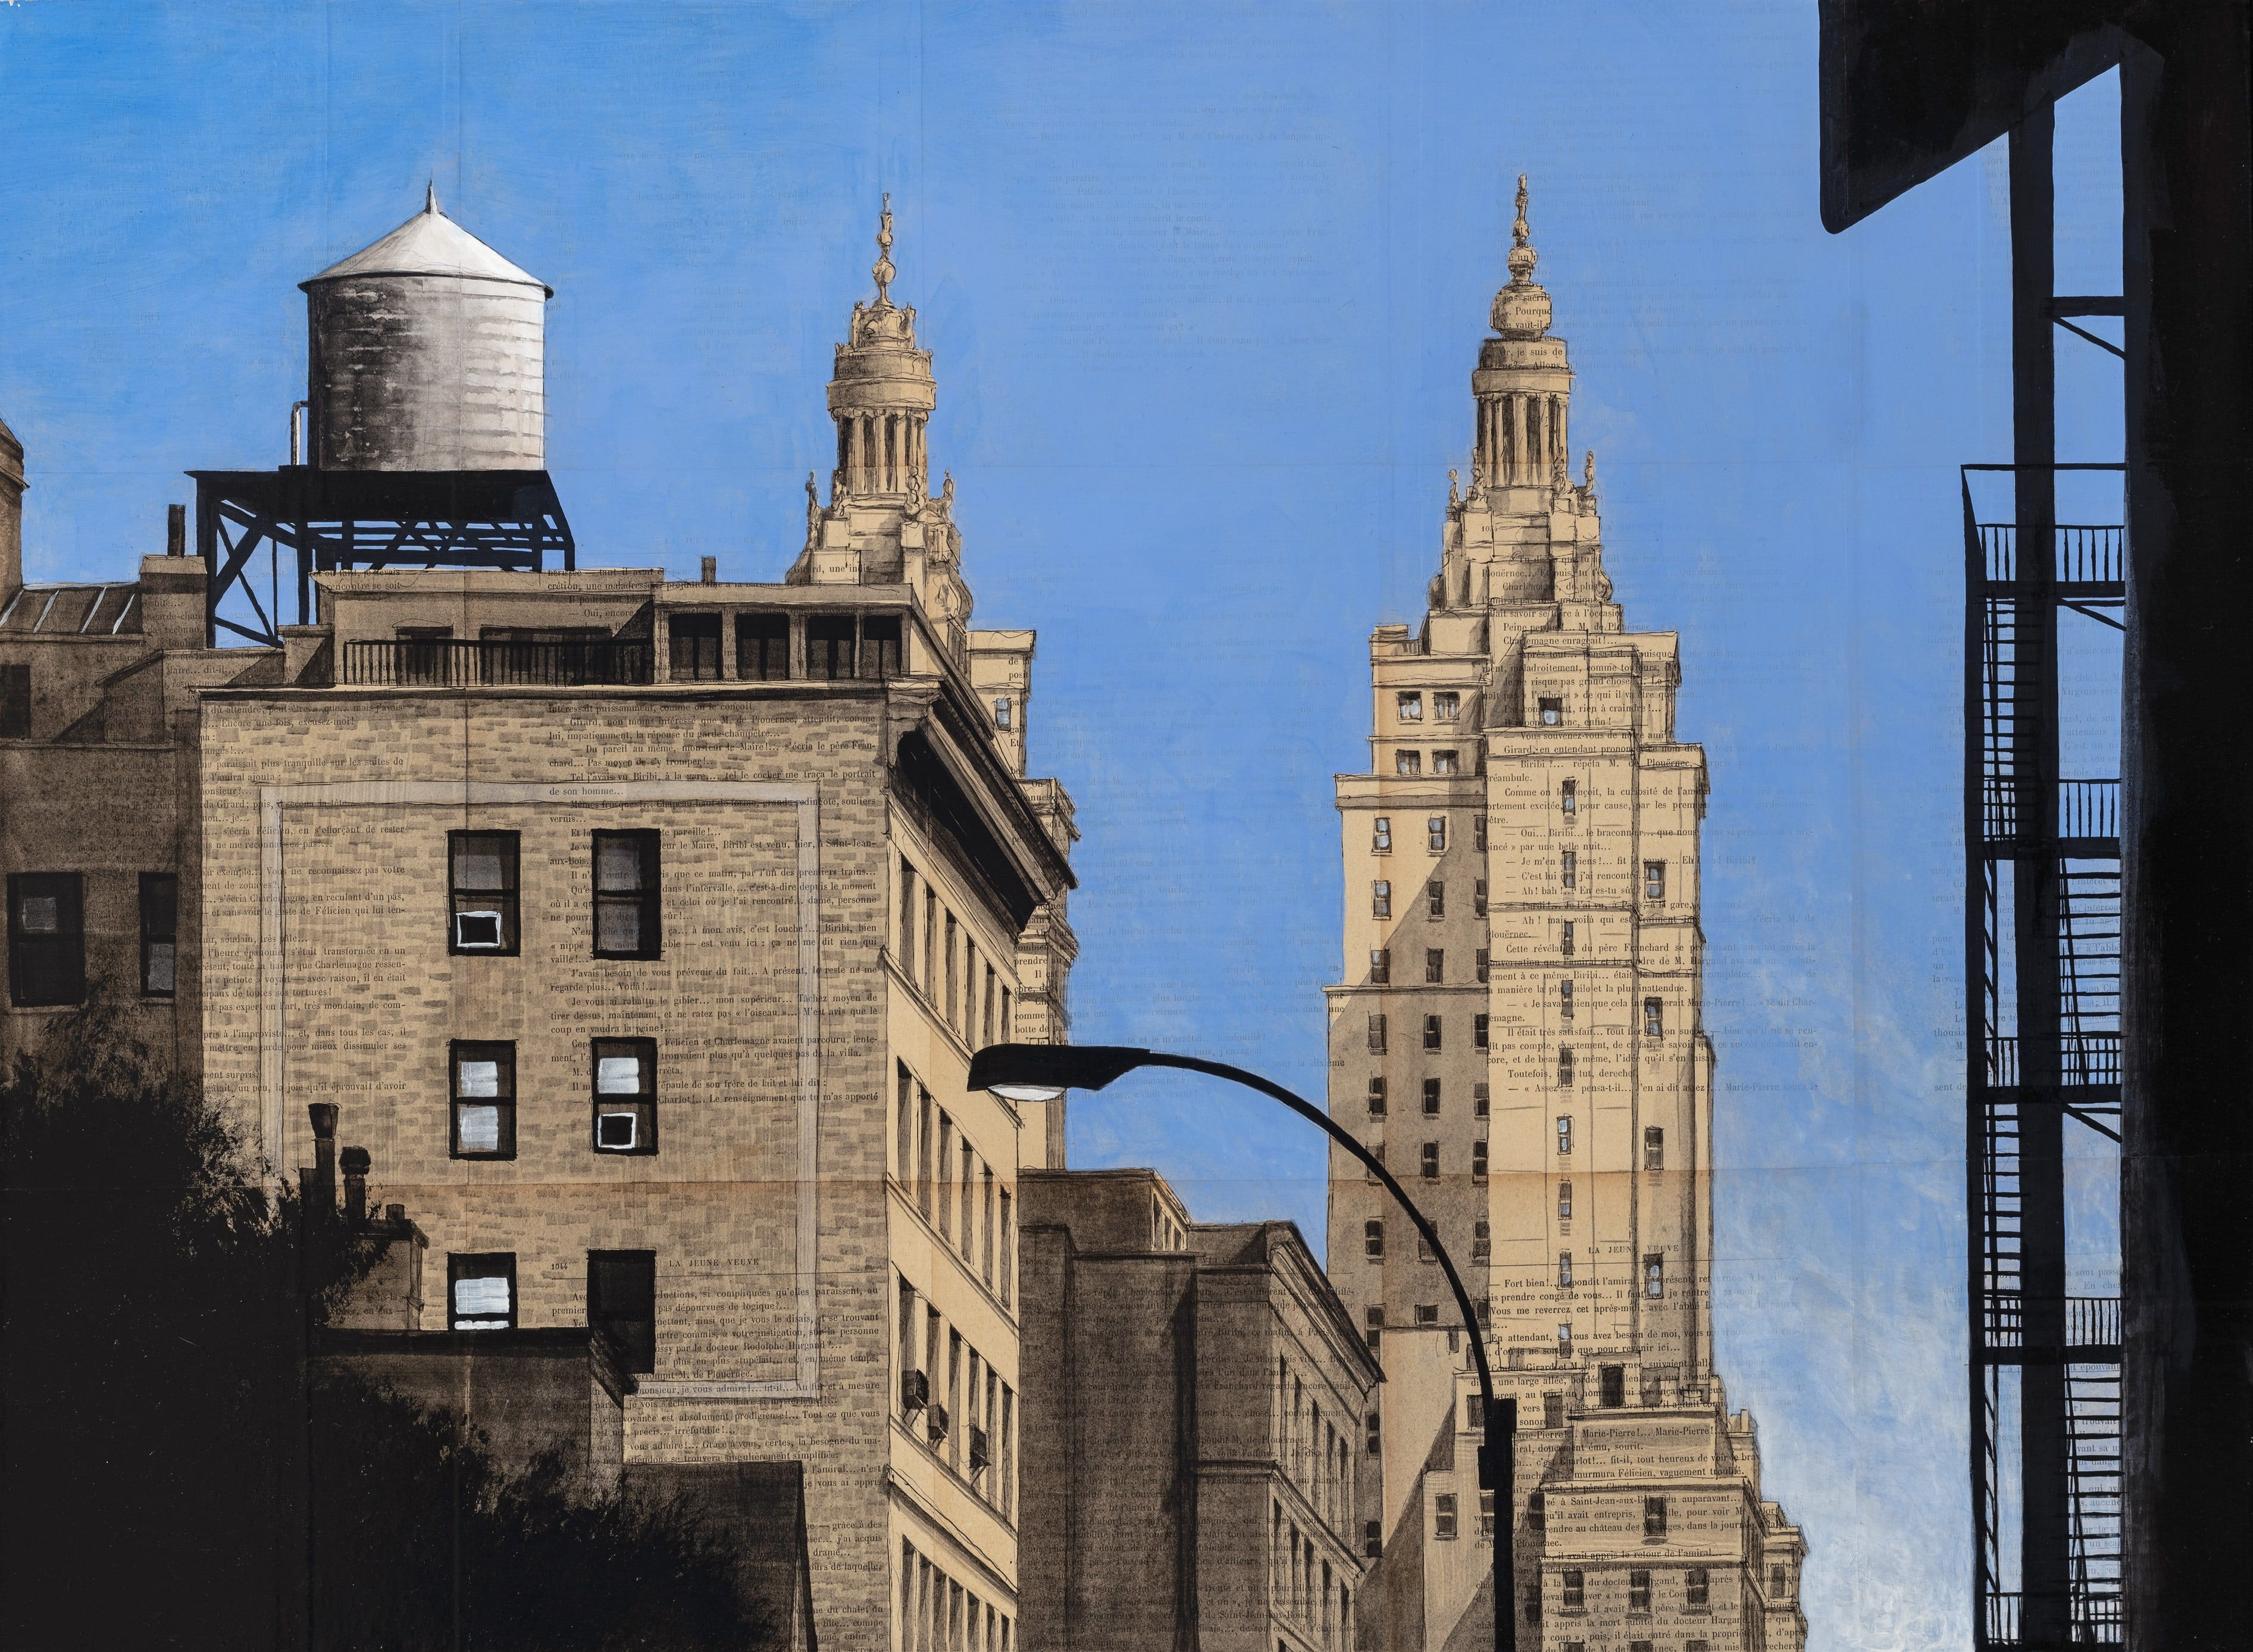 74th and Broadway,Guillaume Chansarel,Peinture